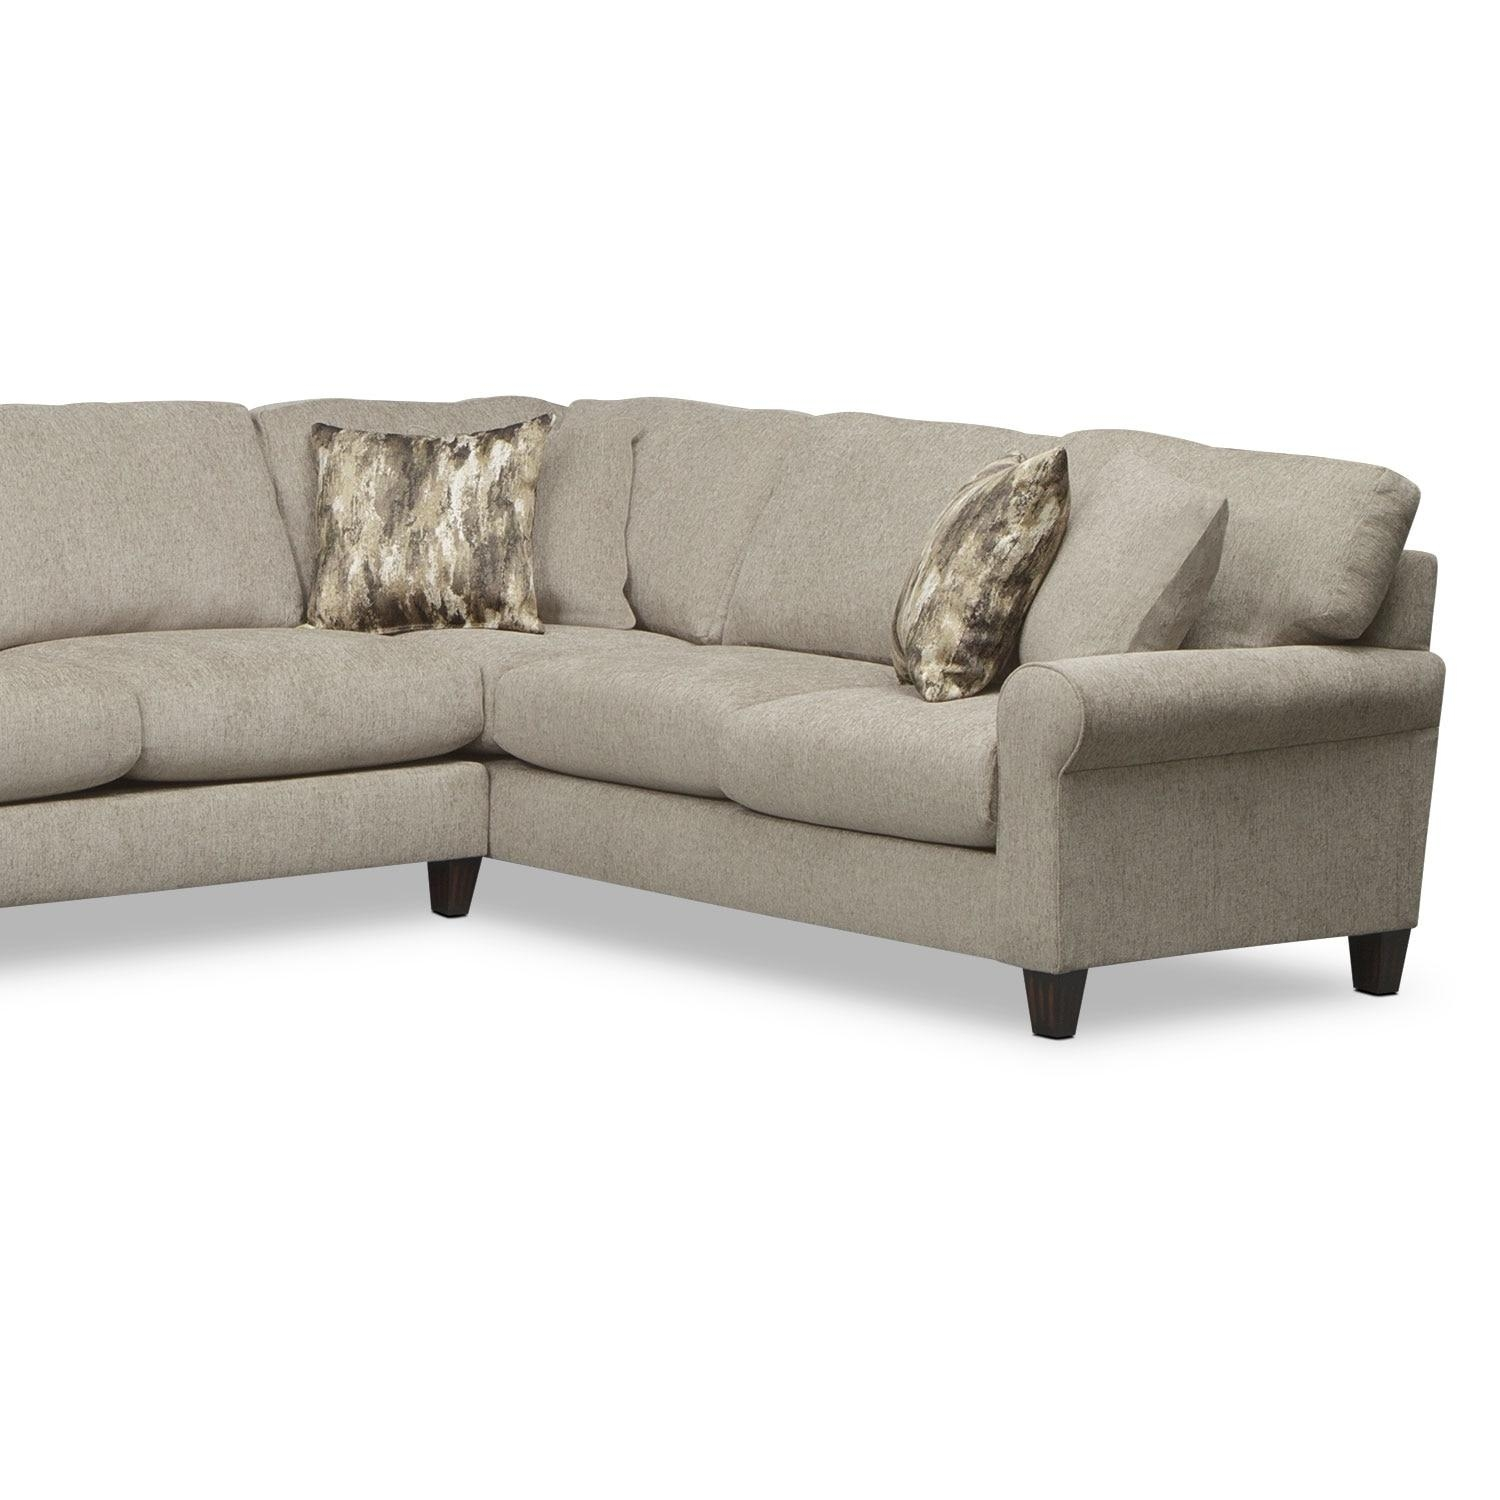 Karma 3 Piece Sectional With Left Facing Cuddler – Mink | Value Within Sectional Cuddler (View 20 of 20)